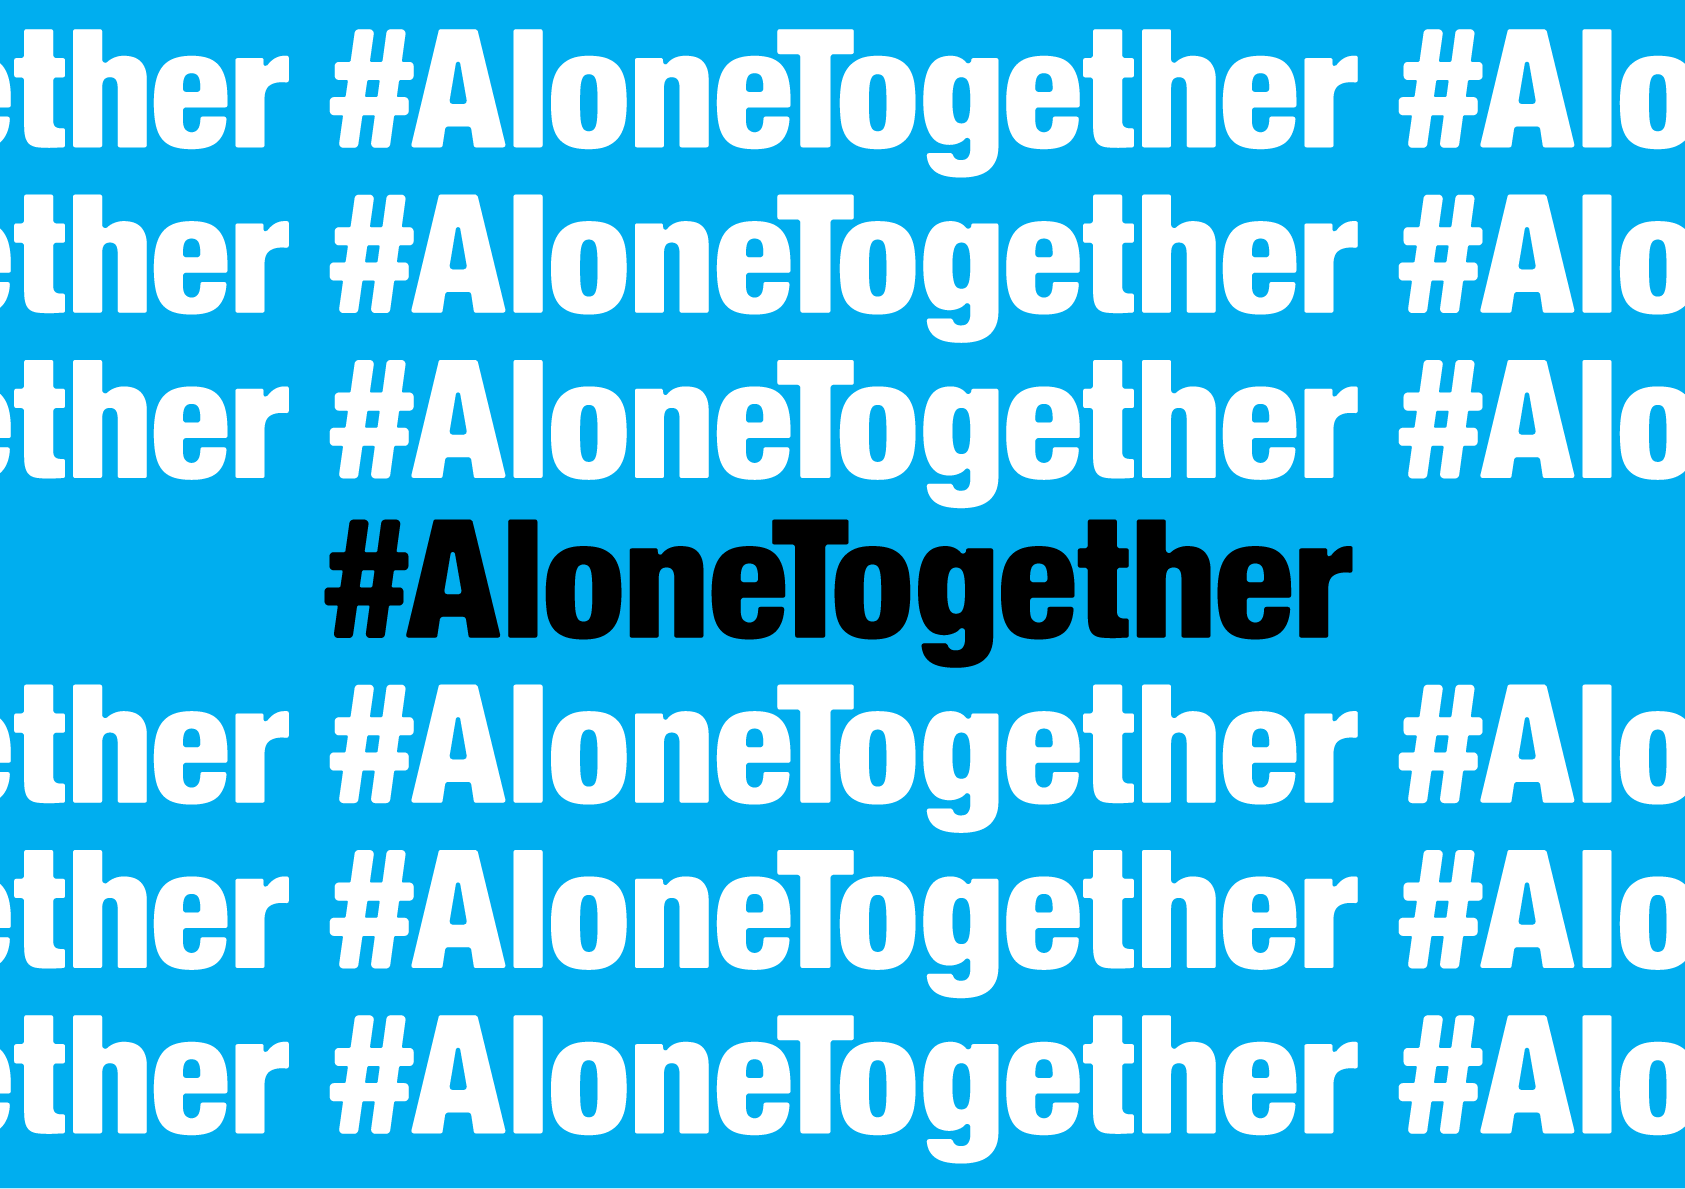 MTV Alone Together Campaign